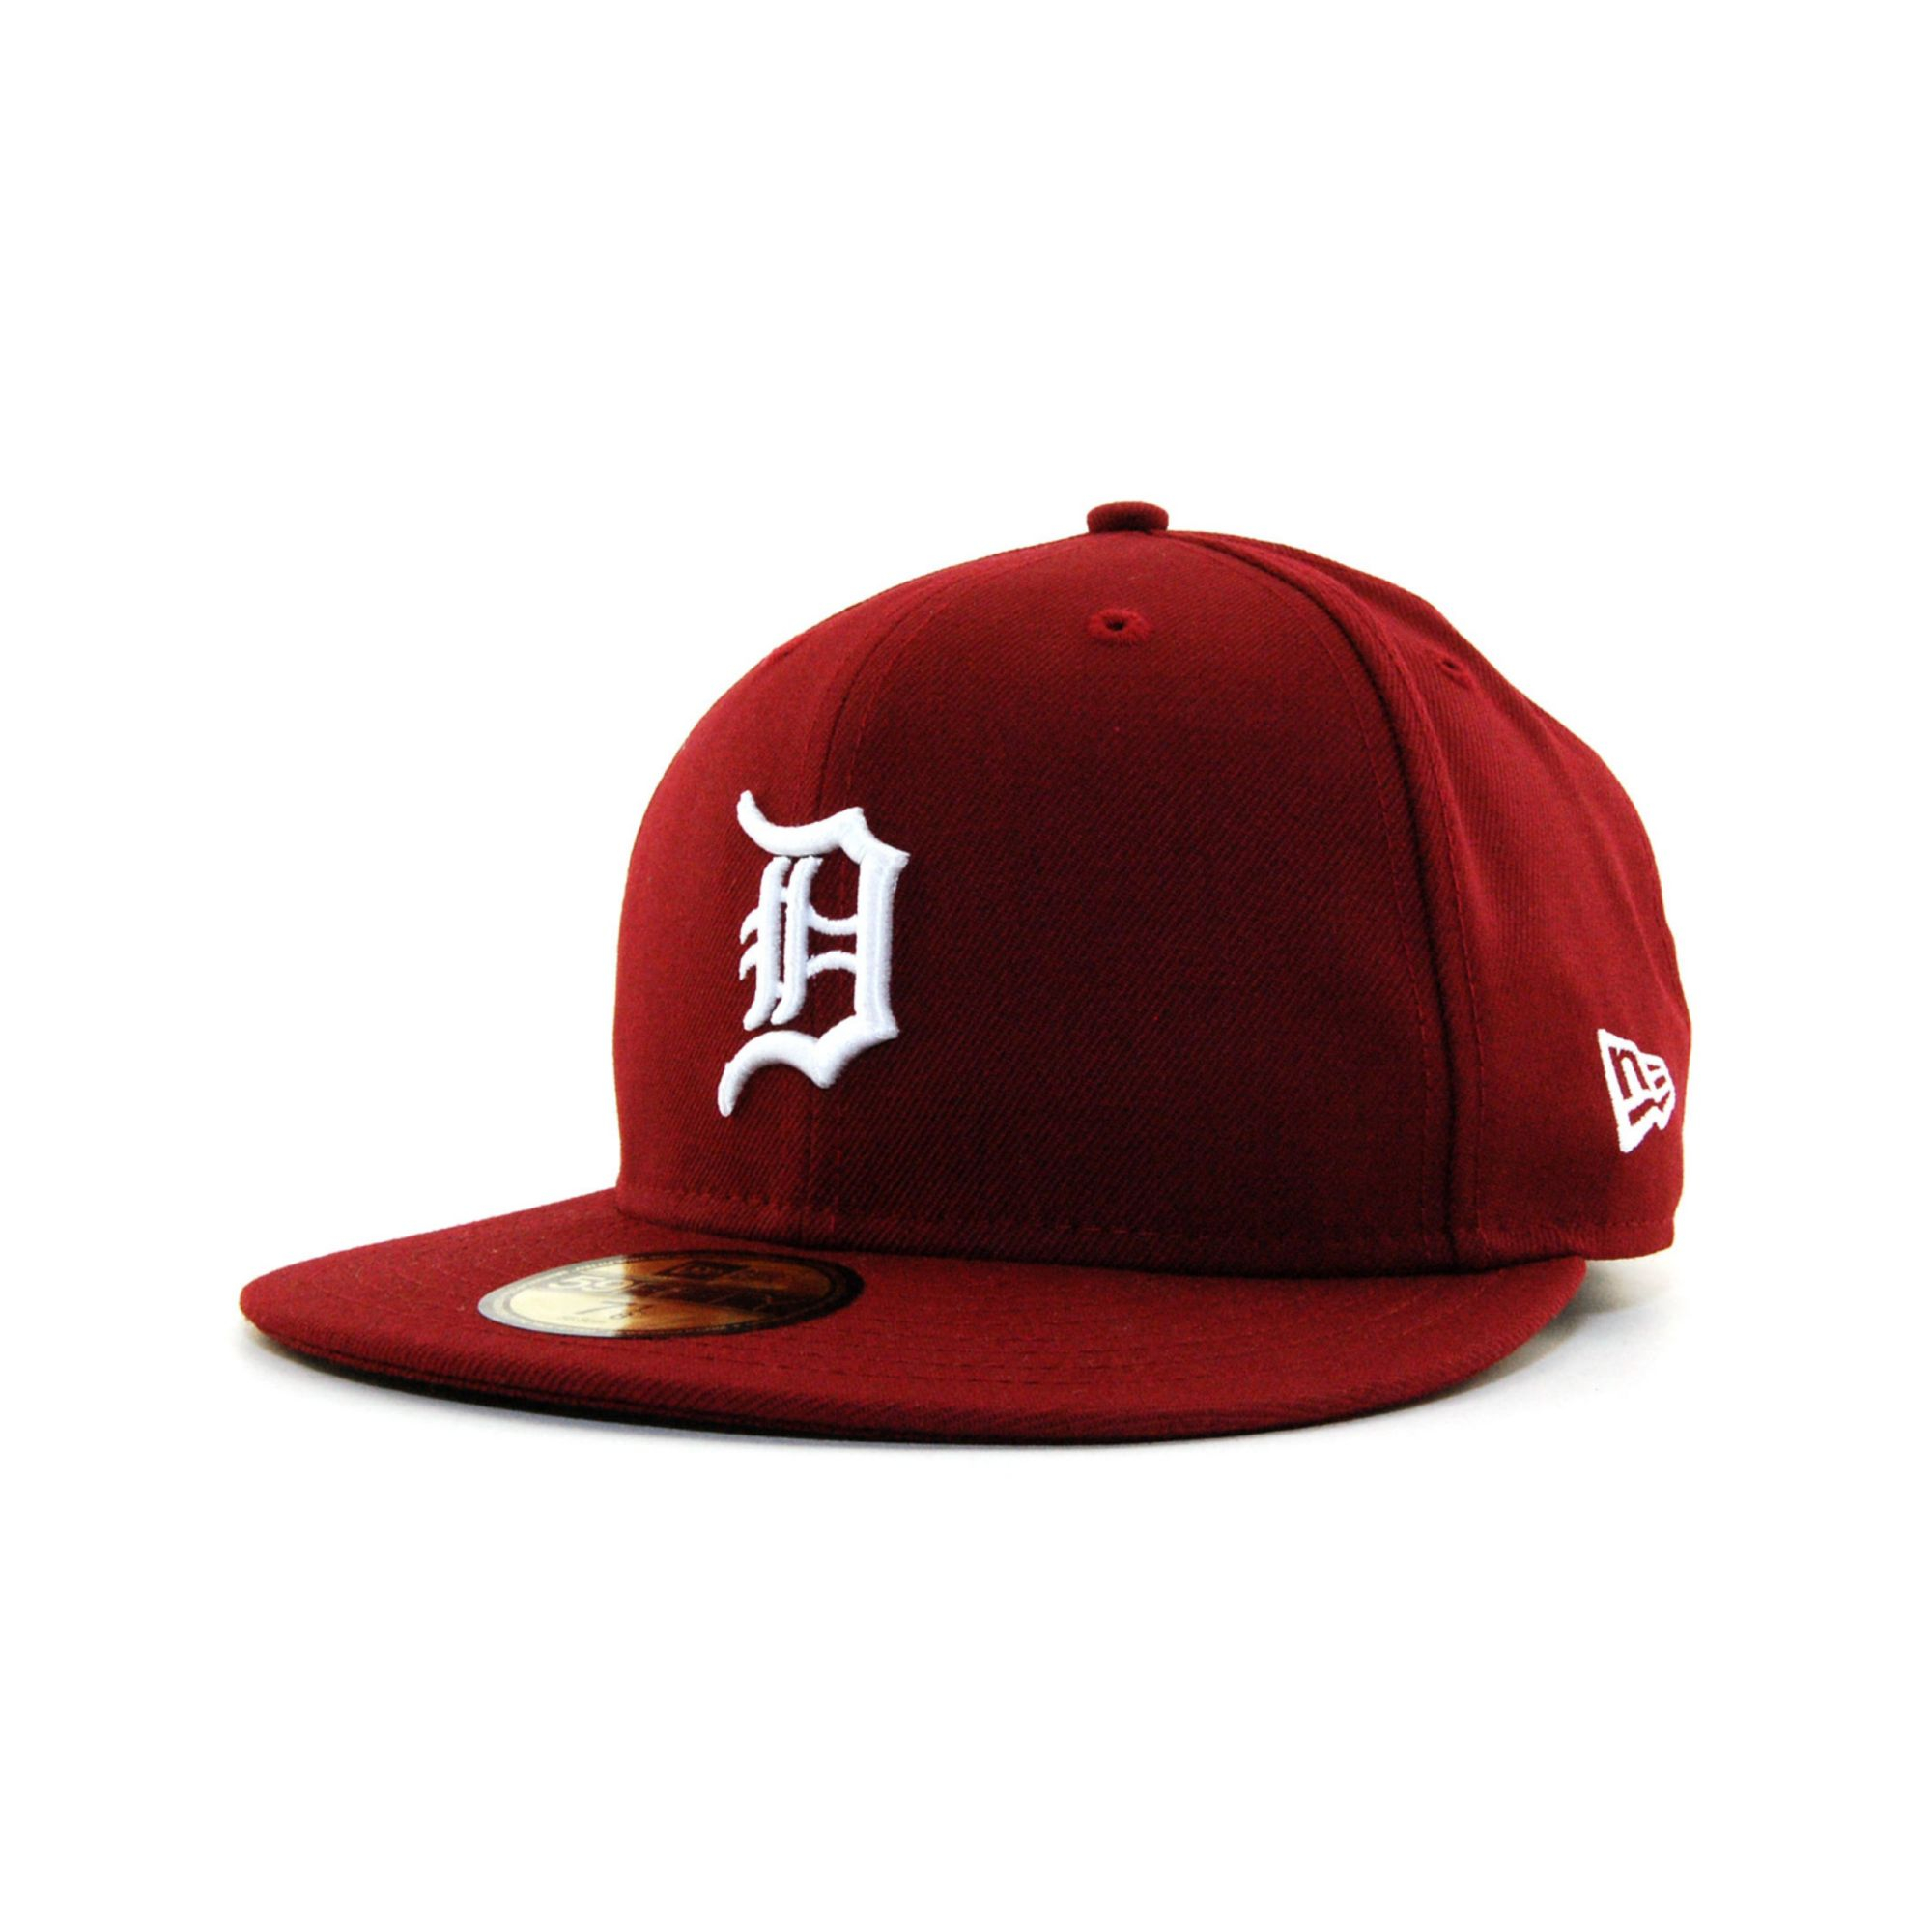 check out 43416 cf0e5 ... france lyst ktz detroit tigers cdub 59fifty cap in red for men 09cc6  0d9e5